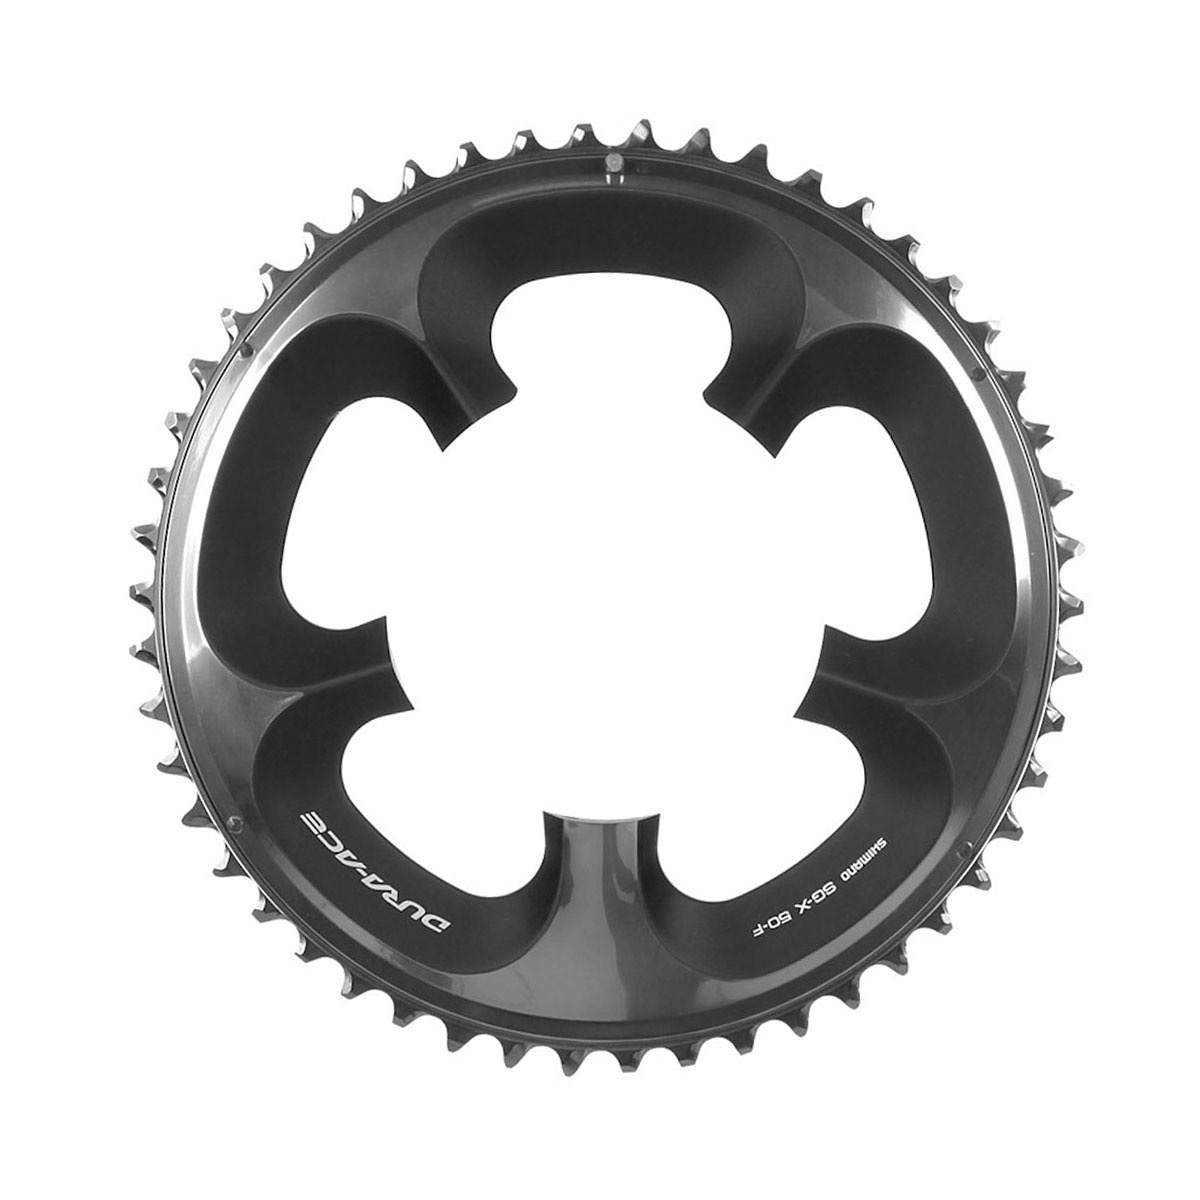 (7950) Dura-Ace Chainring